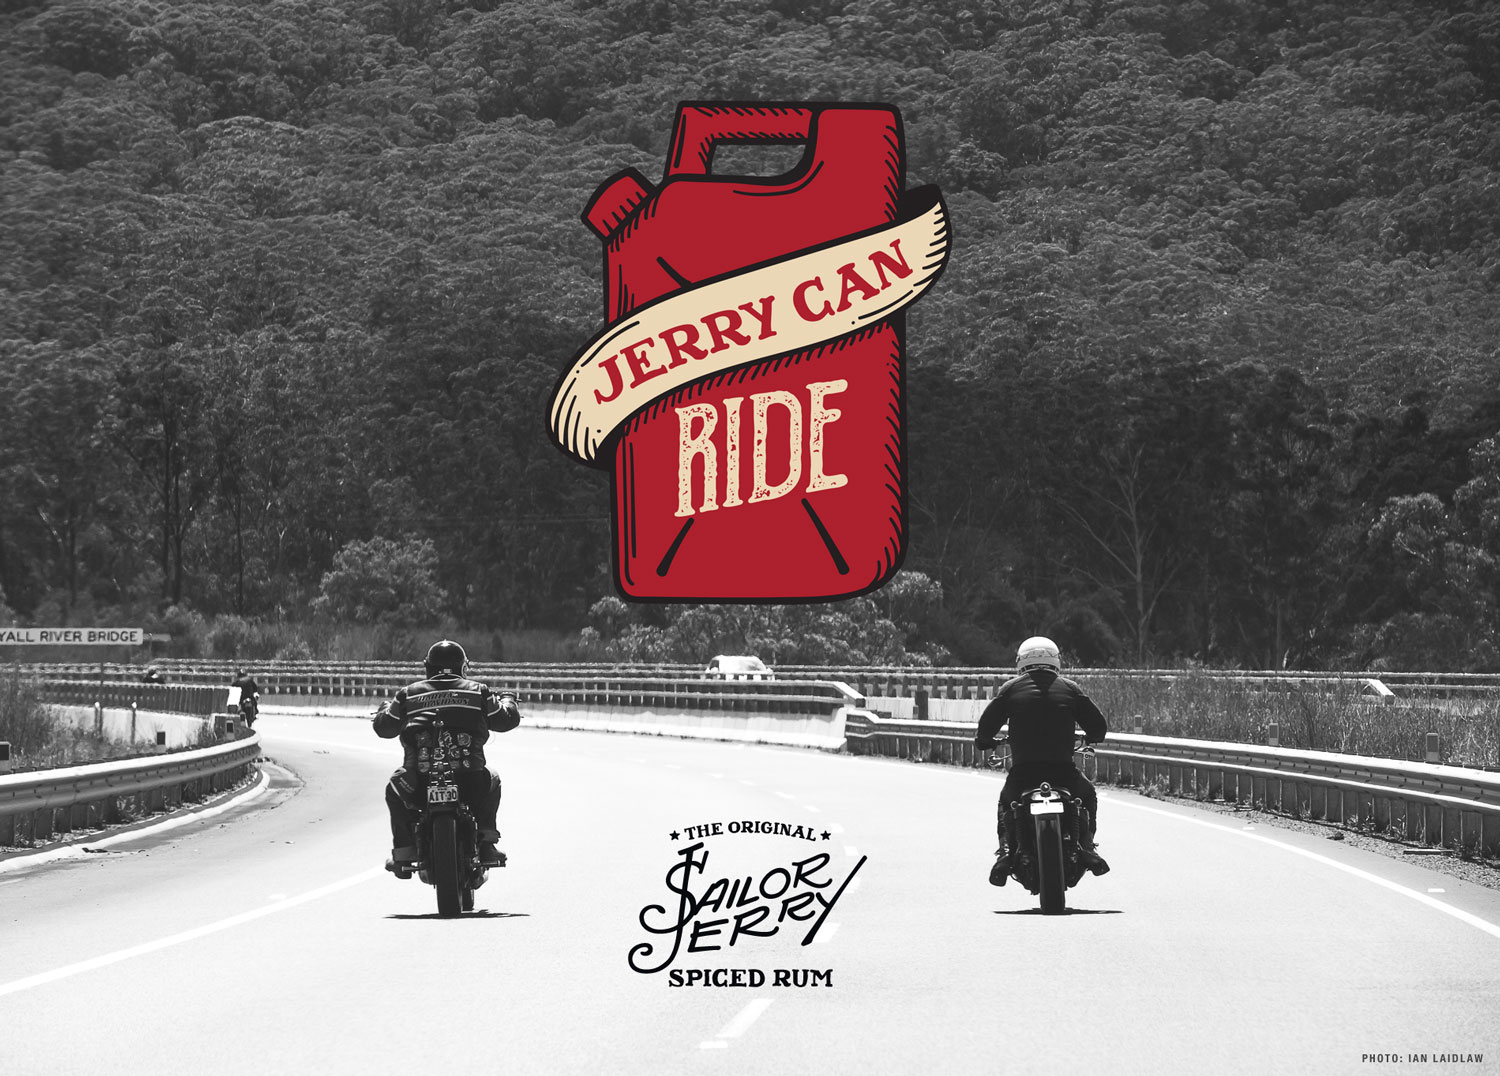 The Jerry Can Ride by Sailor Jerry main image